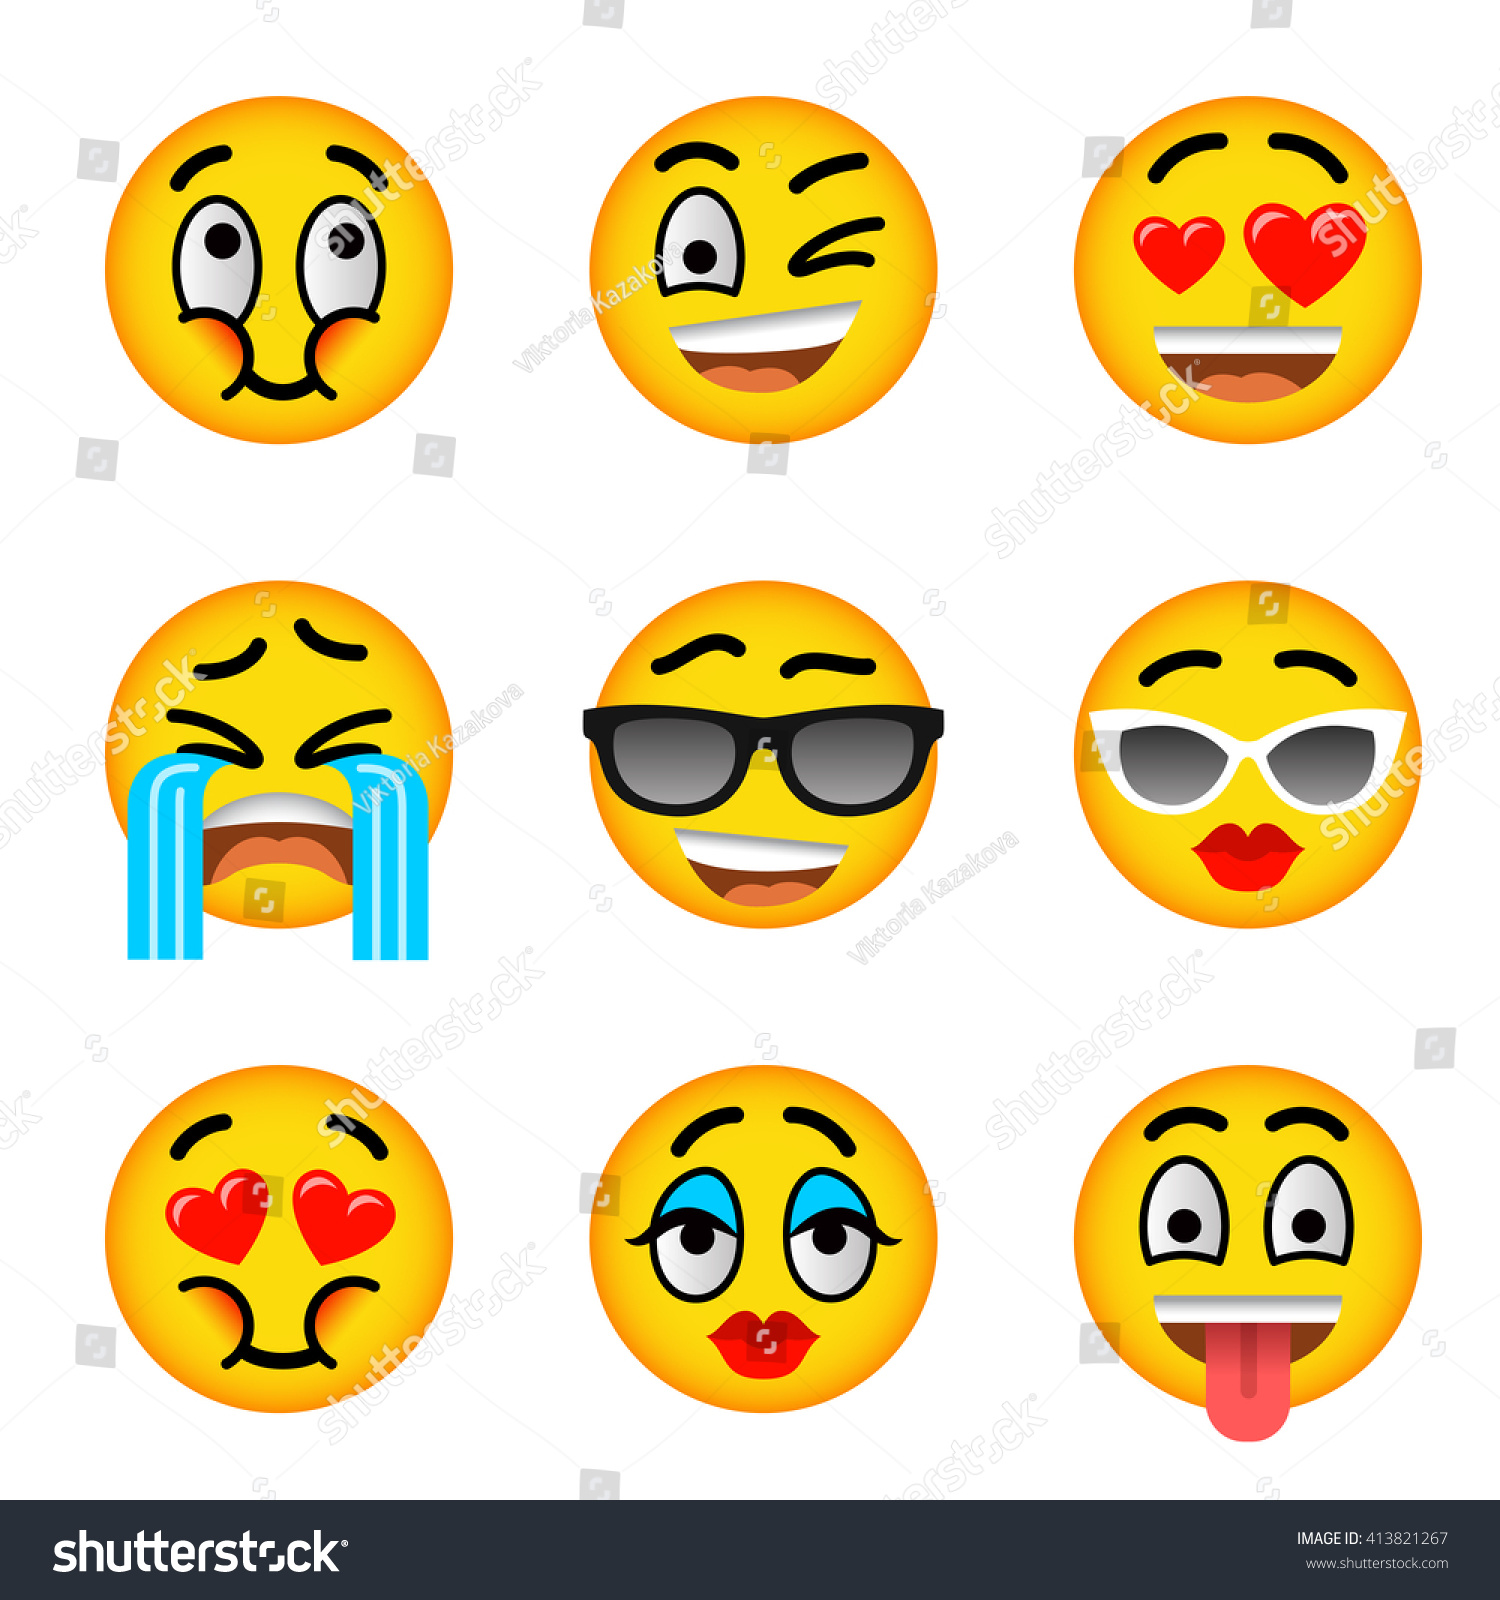 Emoji emoticons smiley face flat vector stock vector 413821267 emoji emoticons smiley face flat vector icons set facial emotions and expression symbols biocorpaavc Gallery